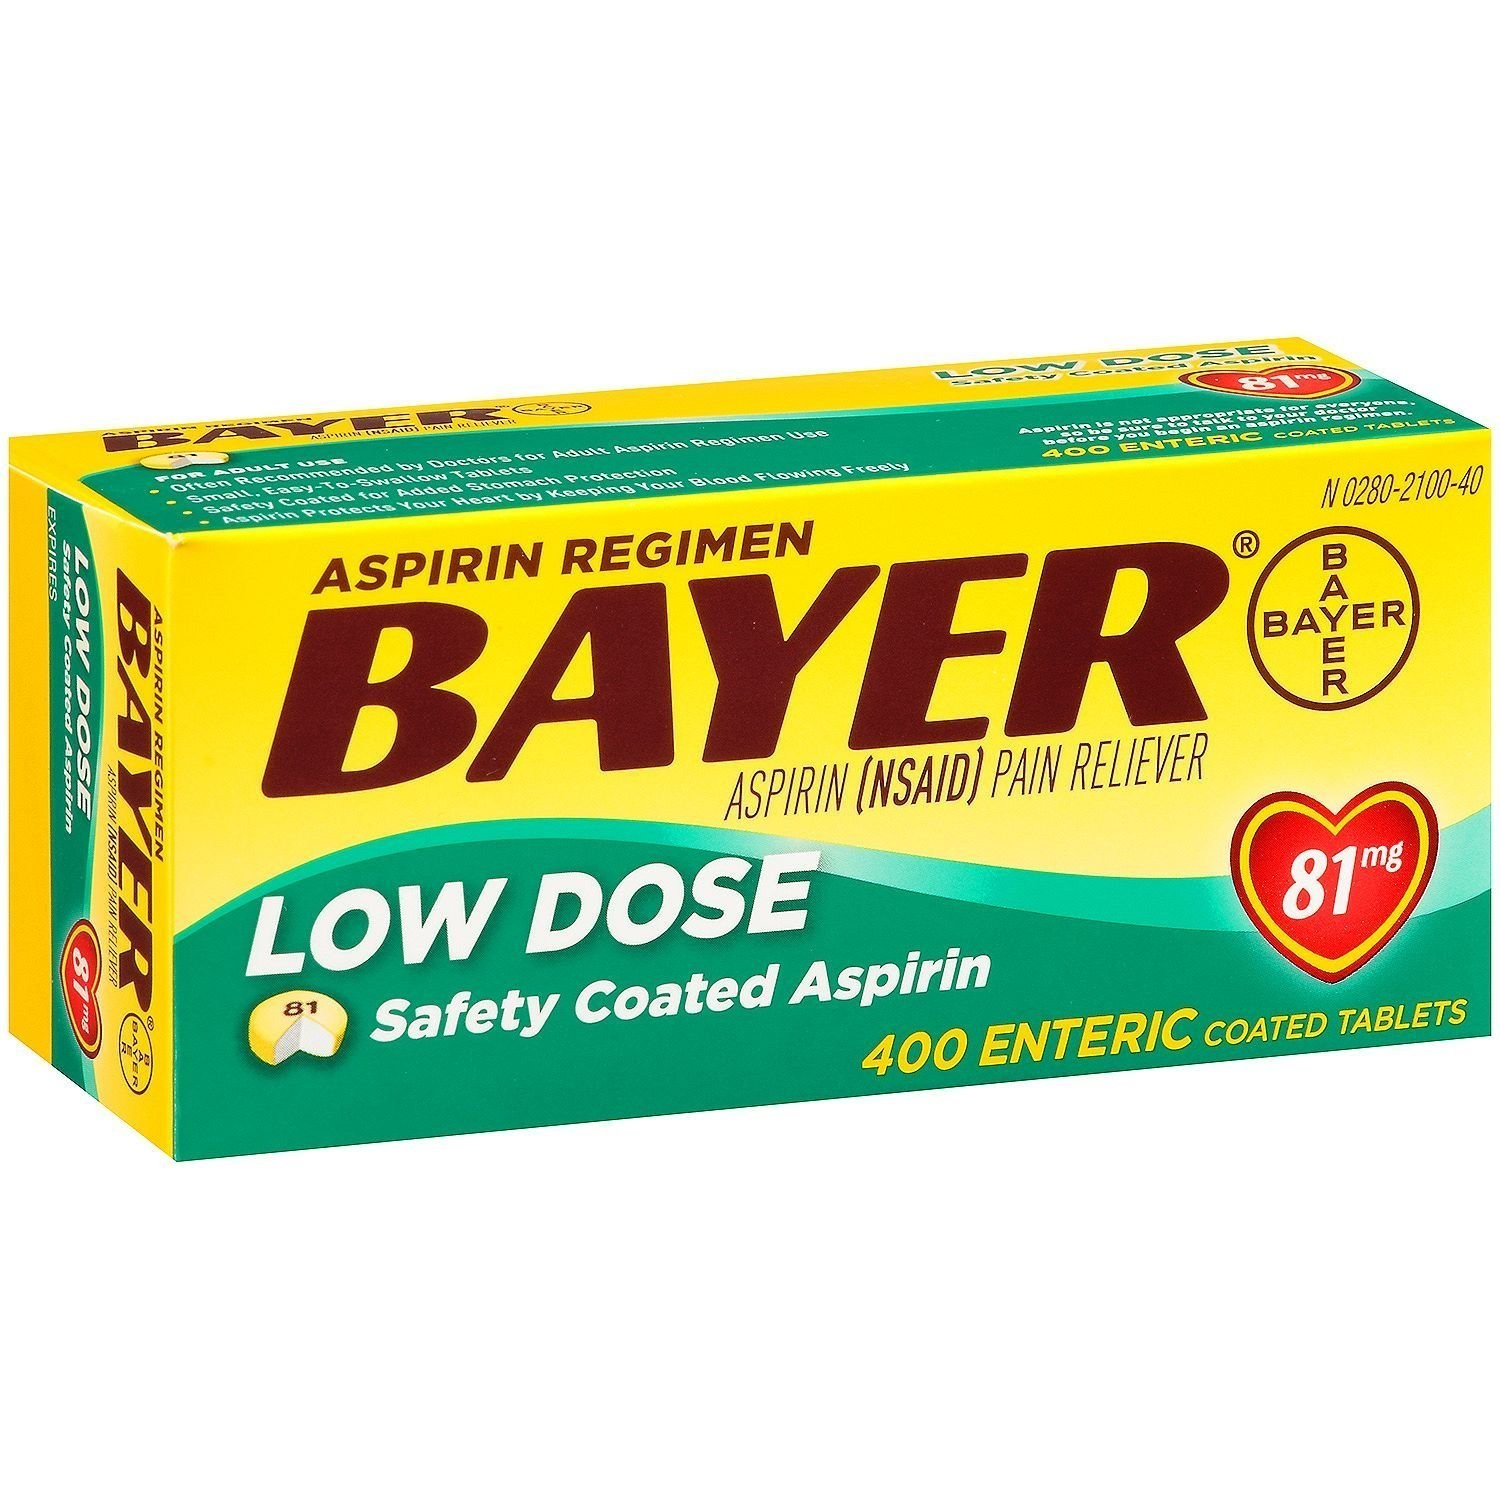 Bayer/Aspirin/Low Dose/Pain Reliever/81mg 400caps, 81mg  400caps